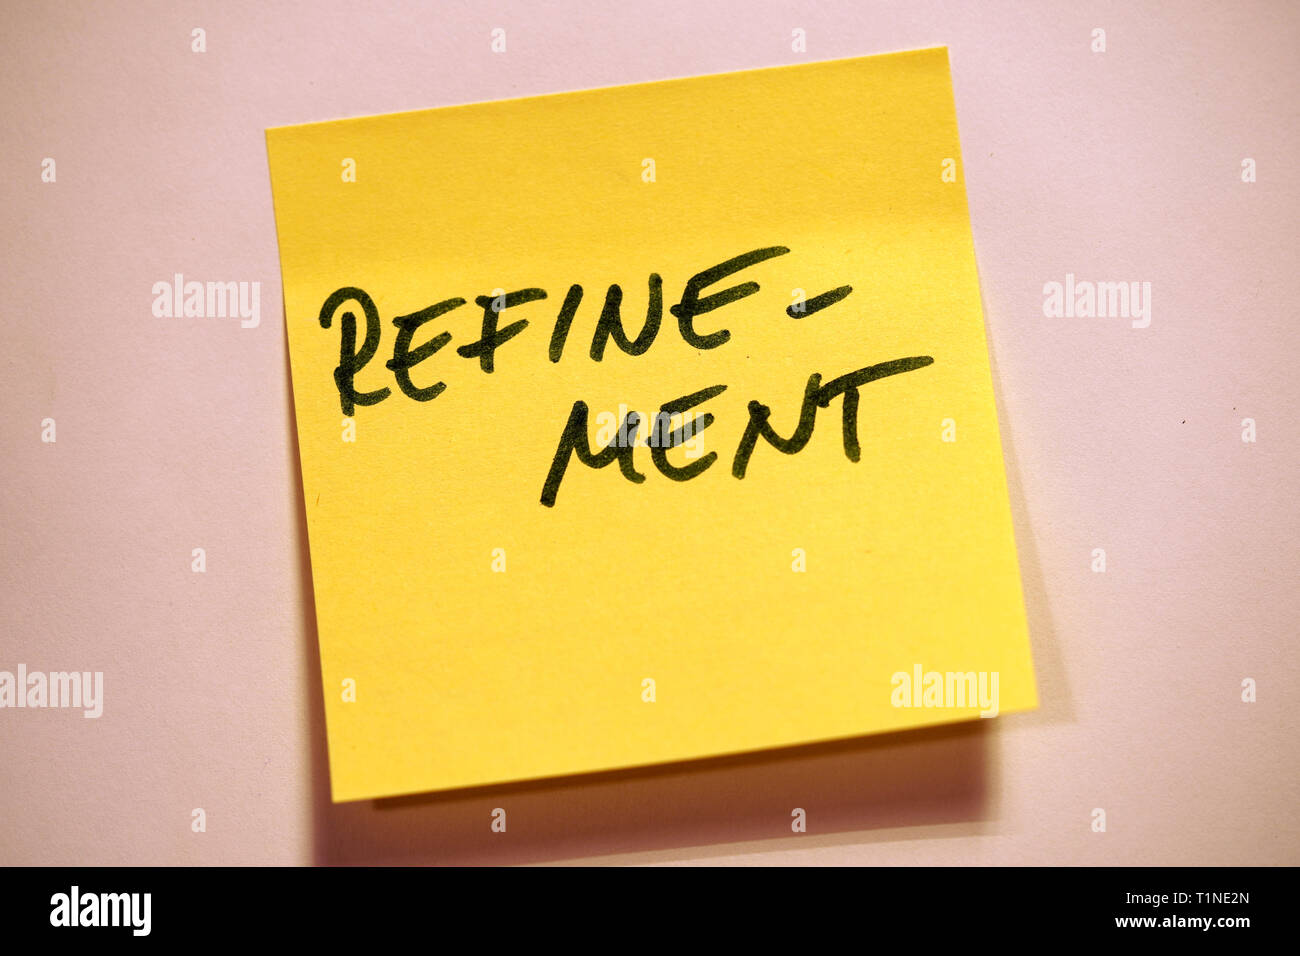 Yellow Sticky Note Scrum Agile Refinement - Stock Image